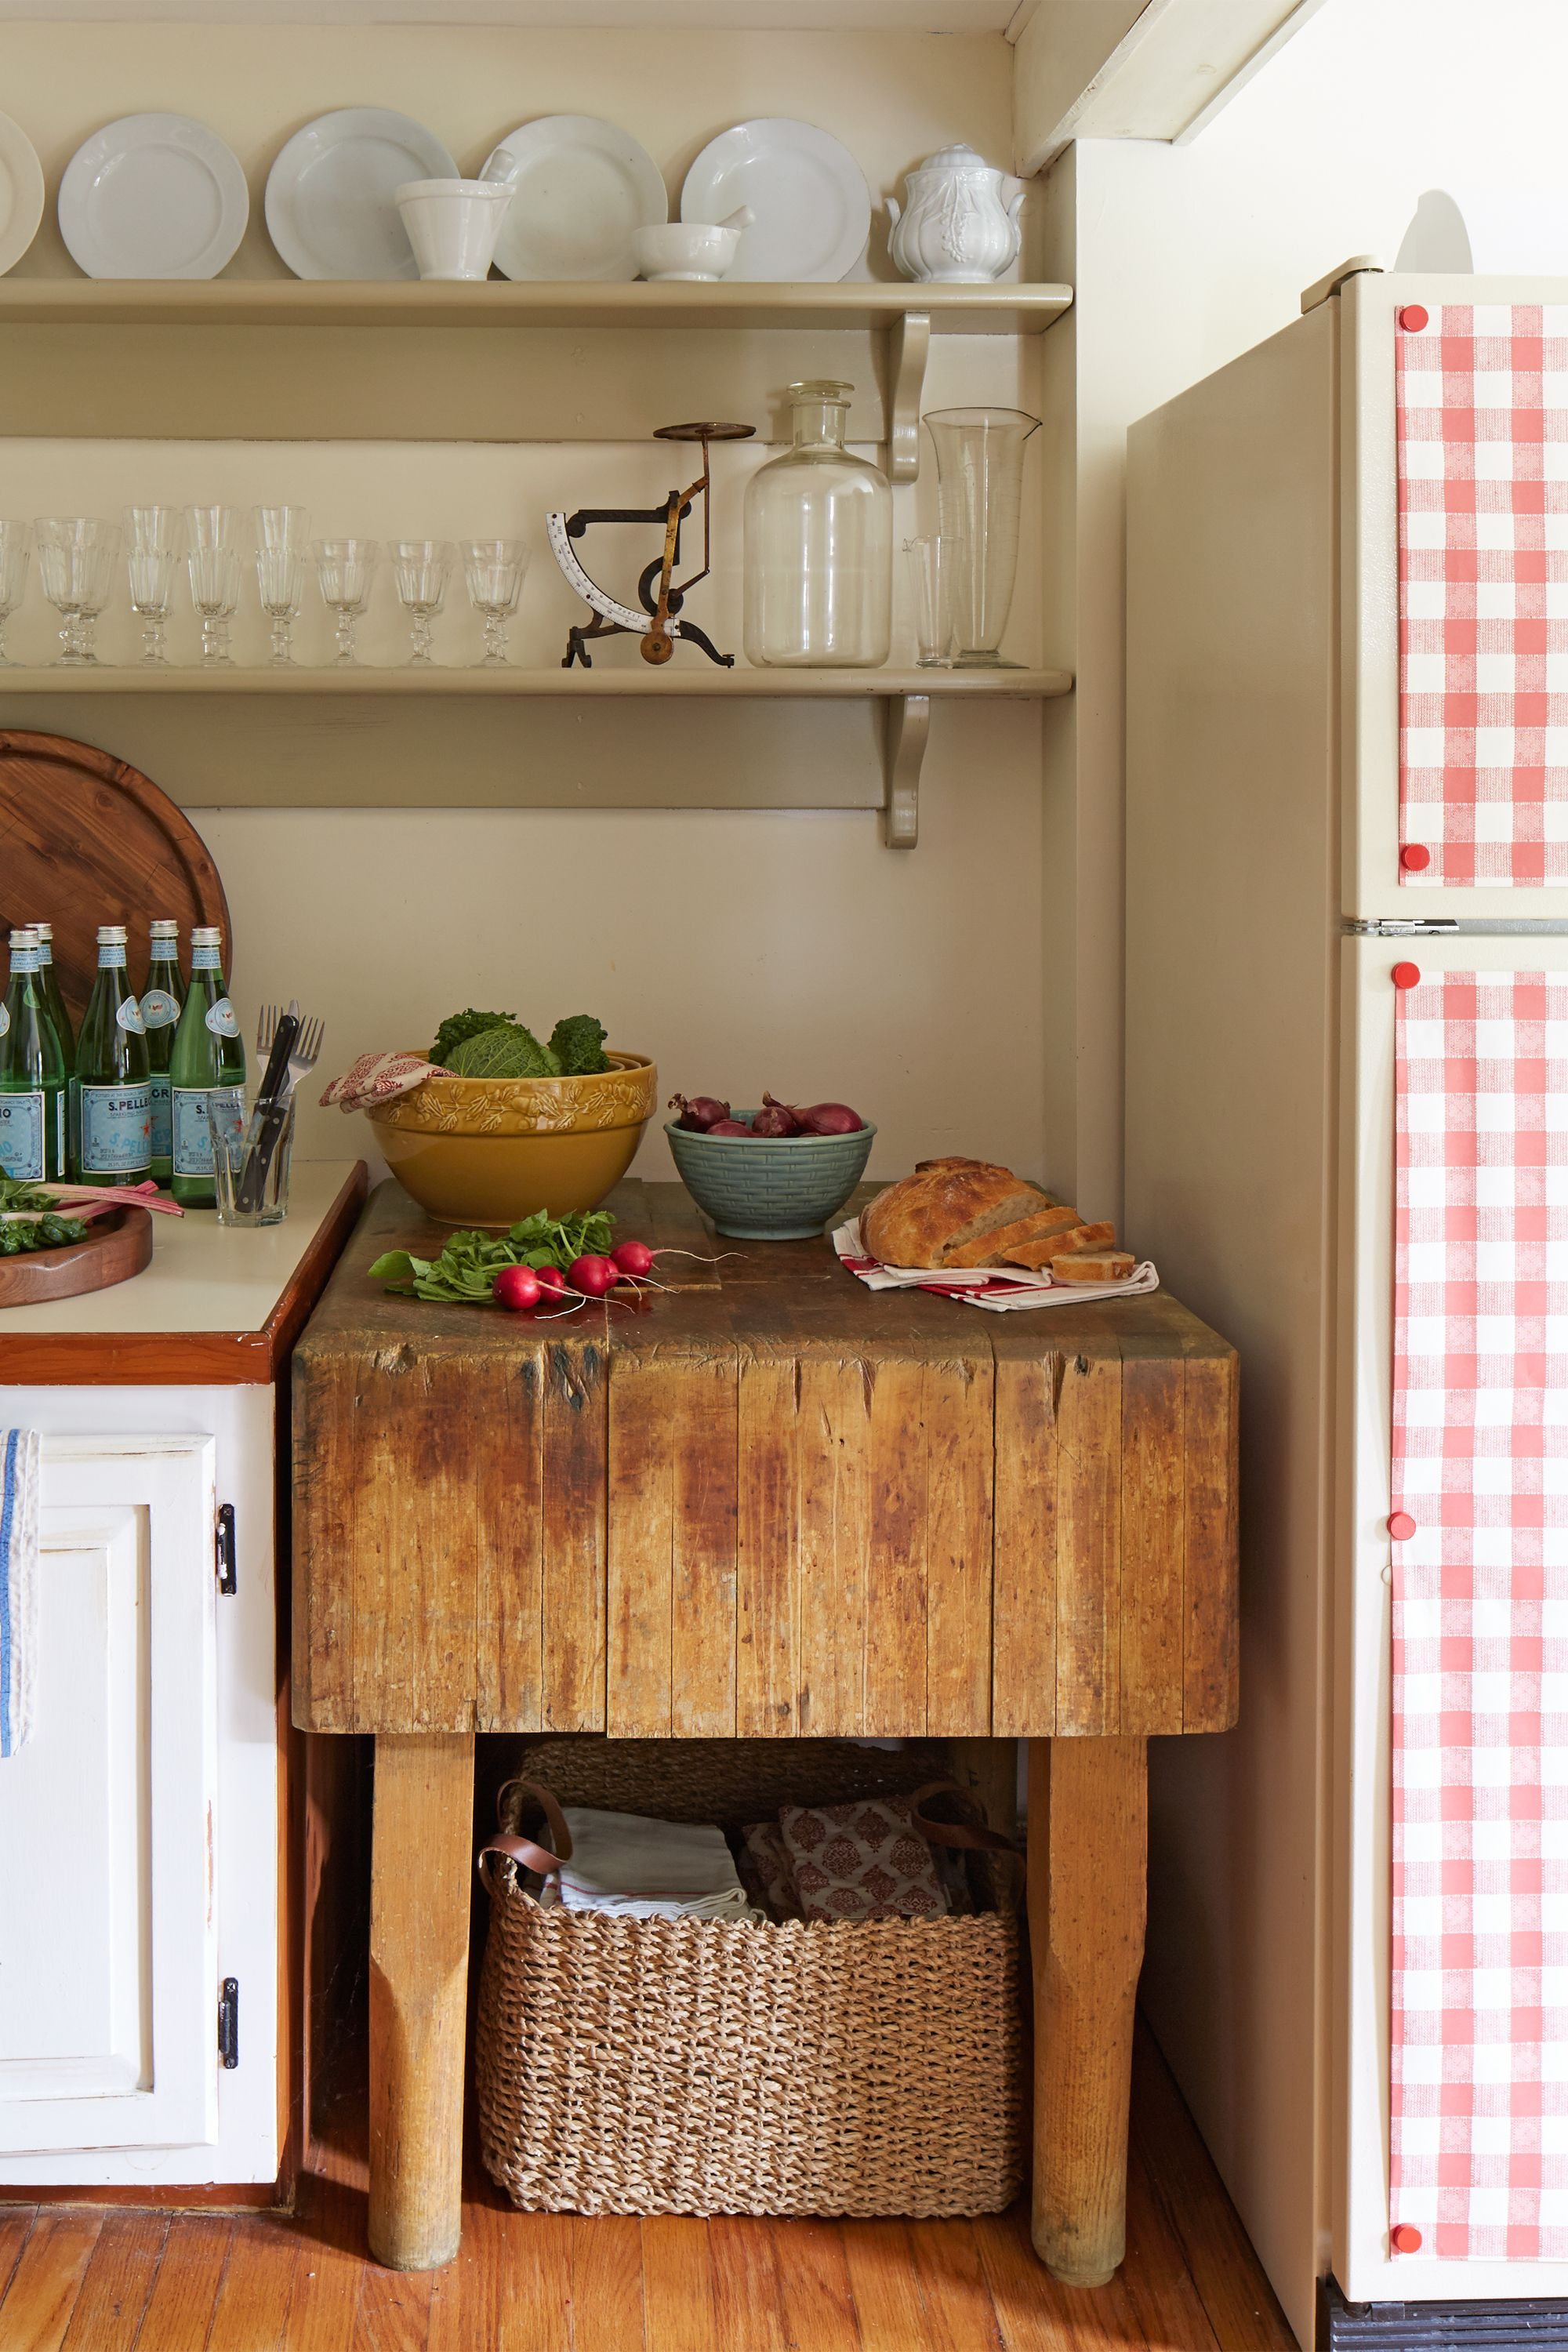 100+ Kitchen Design Ideas - Pictures of Country Kitchen Decorating on old world kitchen design ideas, old world home decor ideas, old world kitchen backsplash ideas,